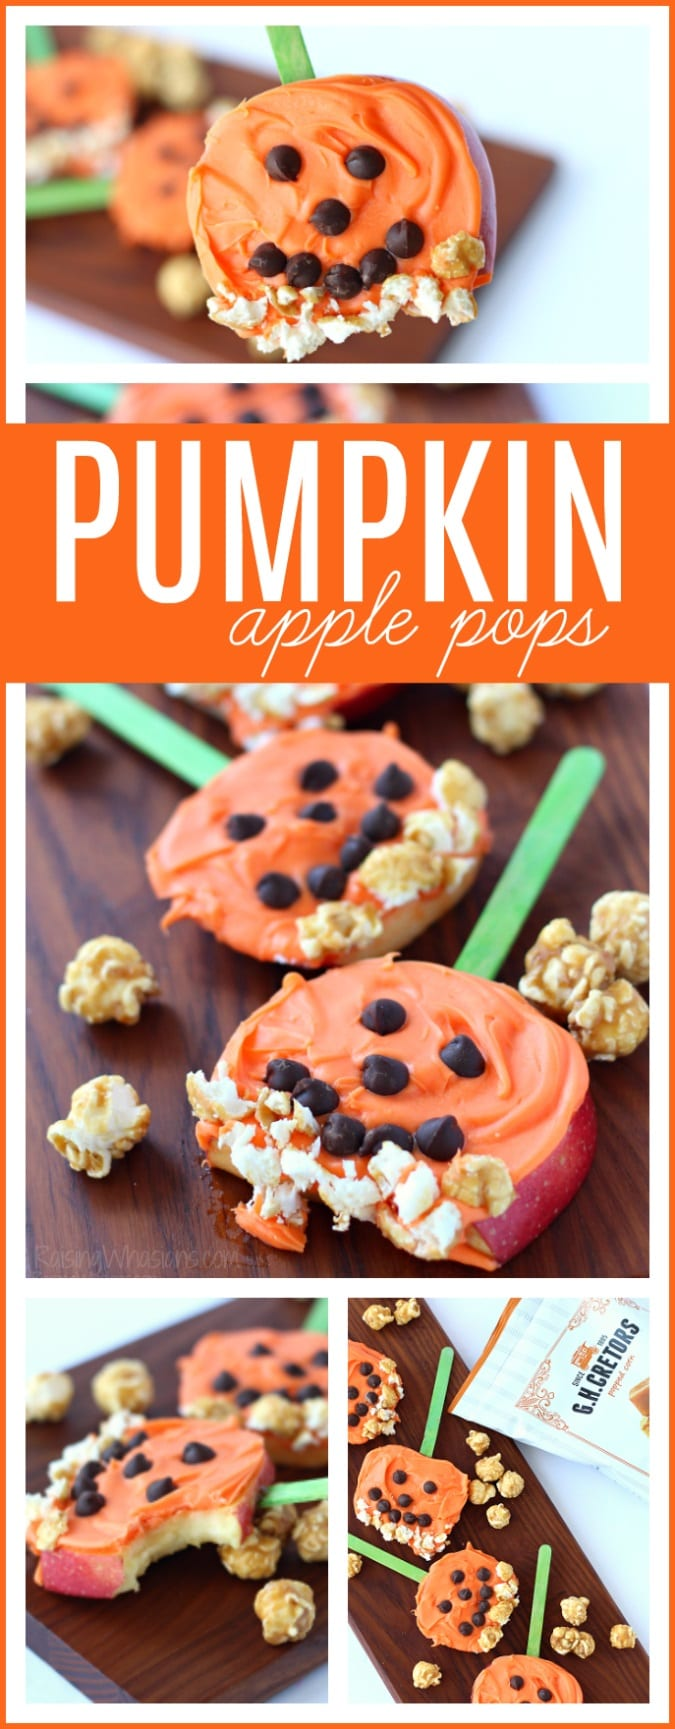 Pumpkin apple pops pinterest Need a festive fall snack that kids love? Try these Pumpkin Apple Pops for a fun Jack-O-Lantern inspired snack, featuring G.H. Cretors Popcorn #Snack #Halloween #Recipe